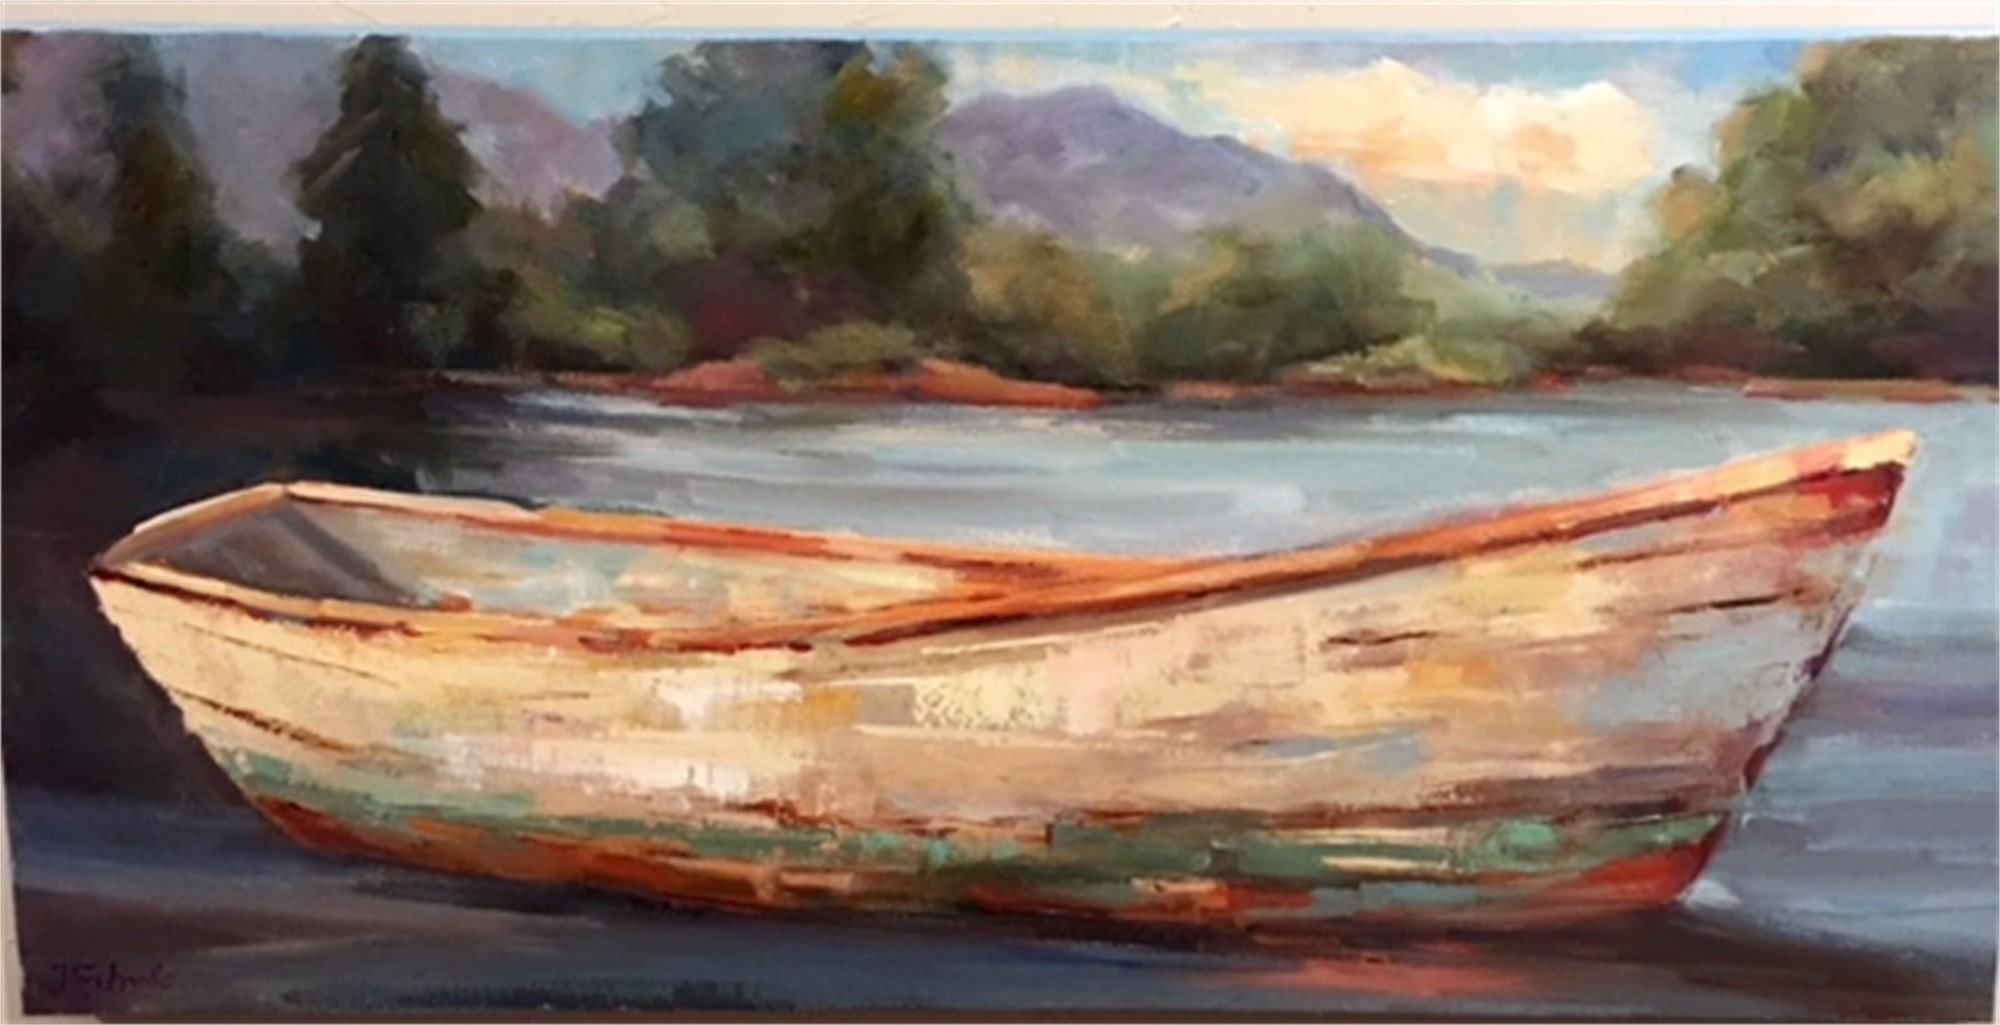 Row Boat in the Cove by Jan Eubanks